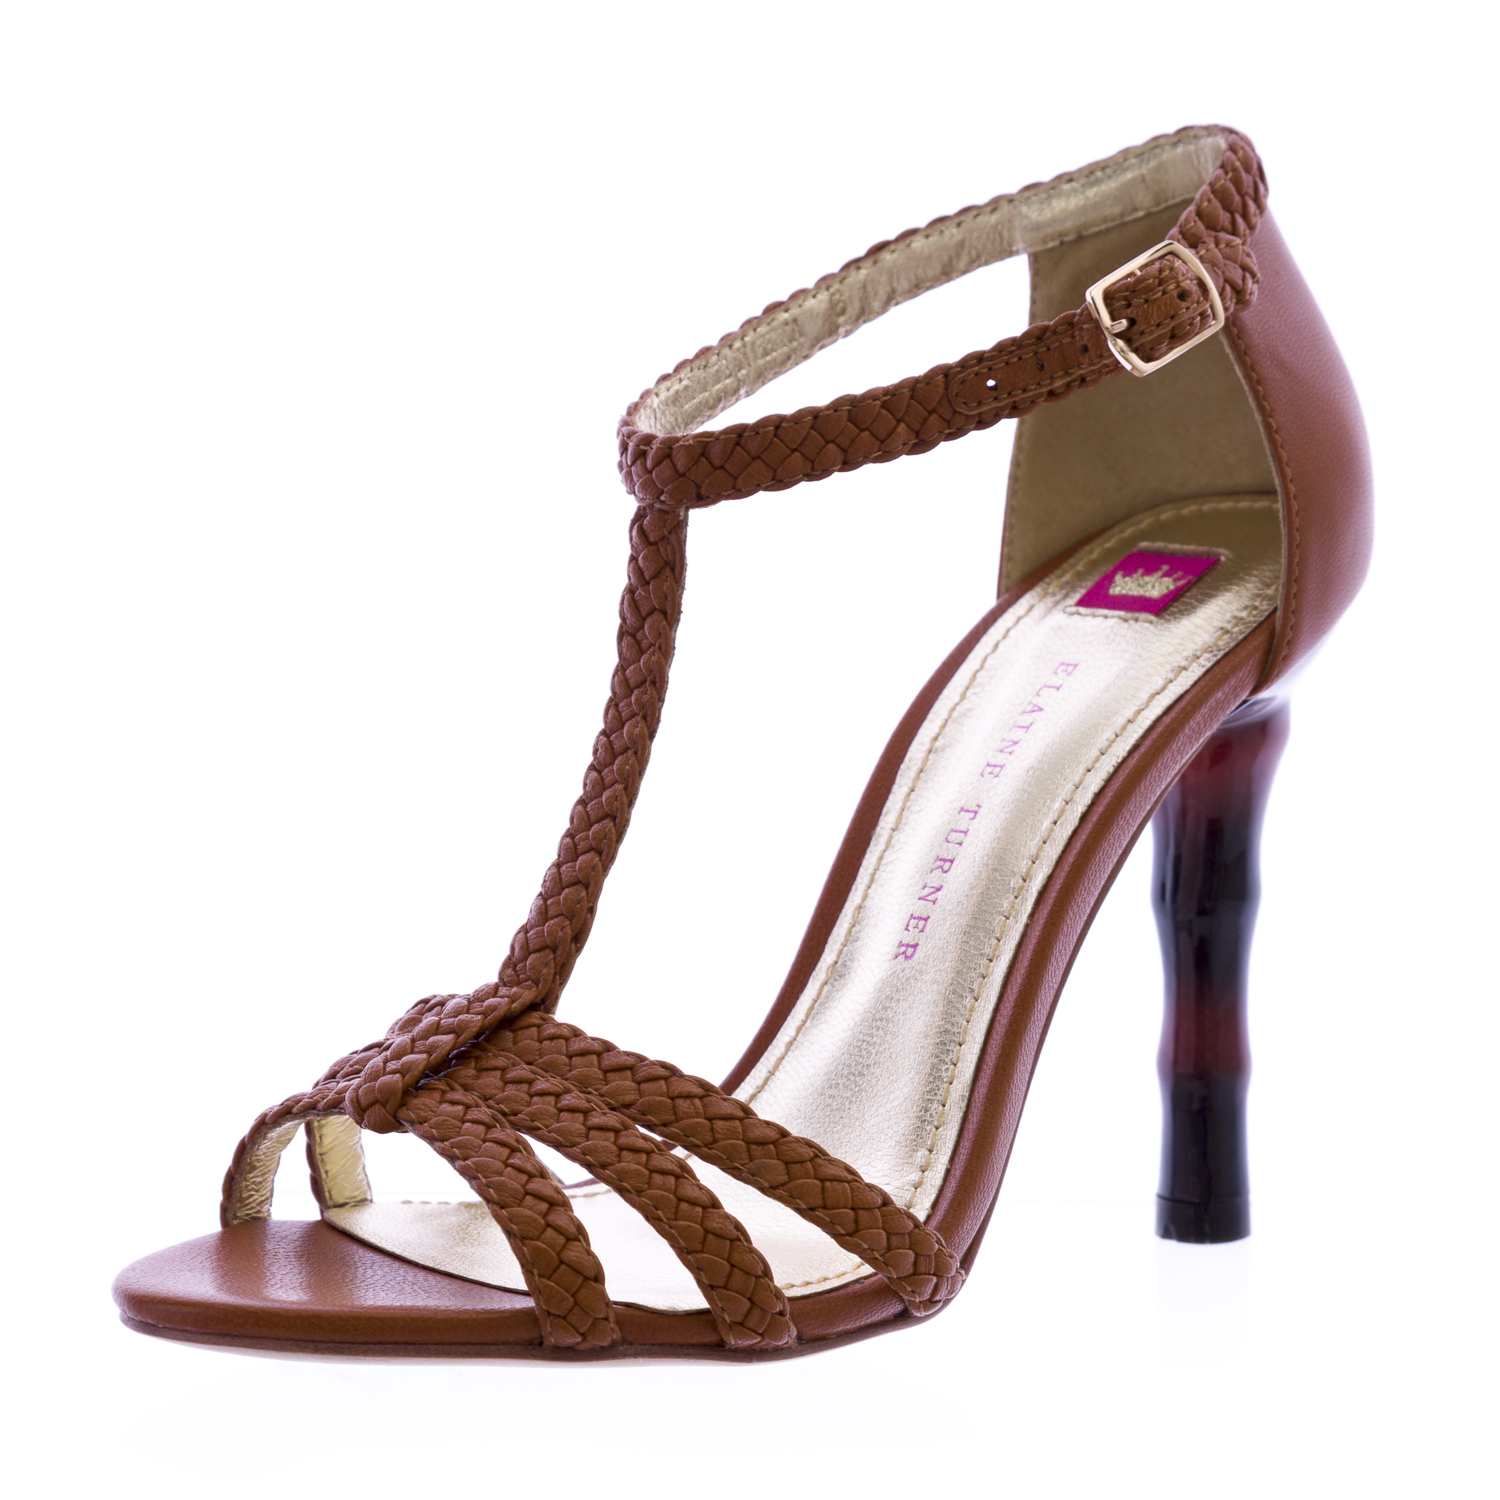 ELAINE TURNER Briana-SP12 Ribbed Heel Sandals Cognac